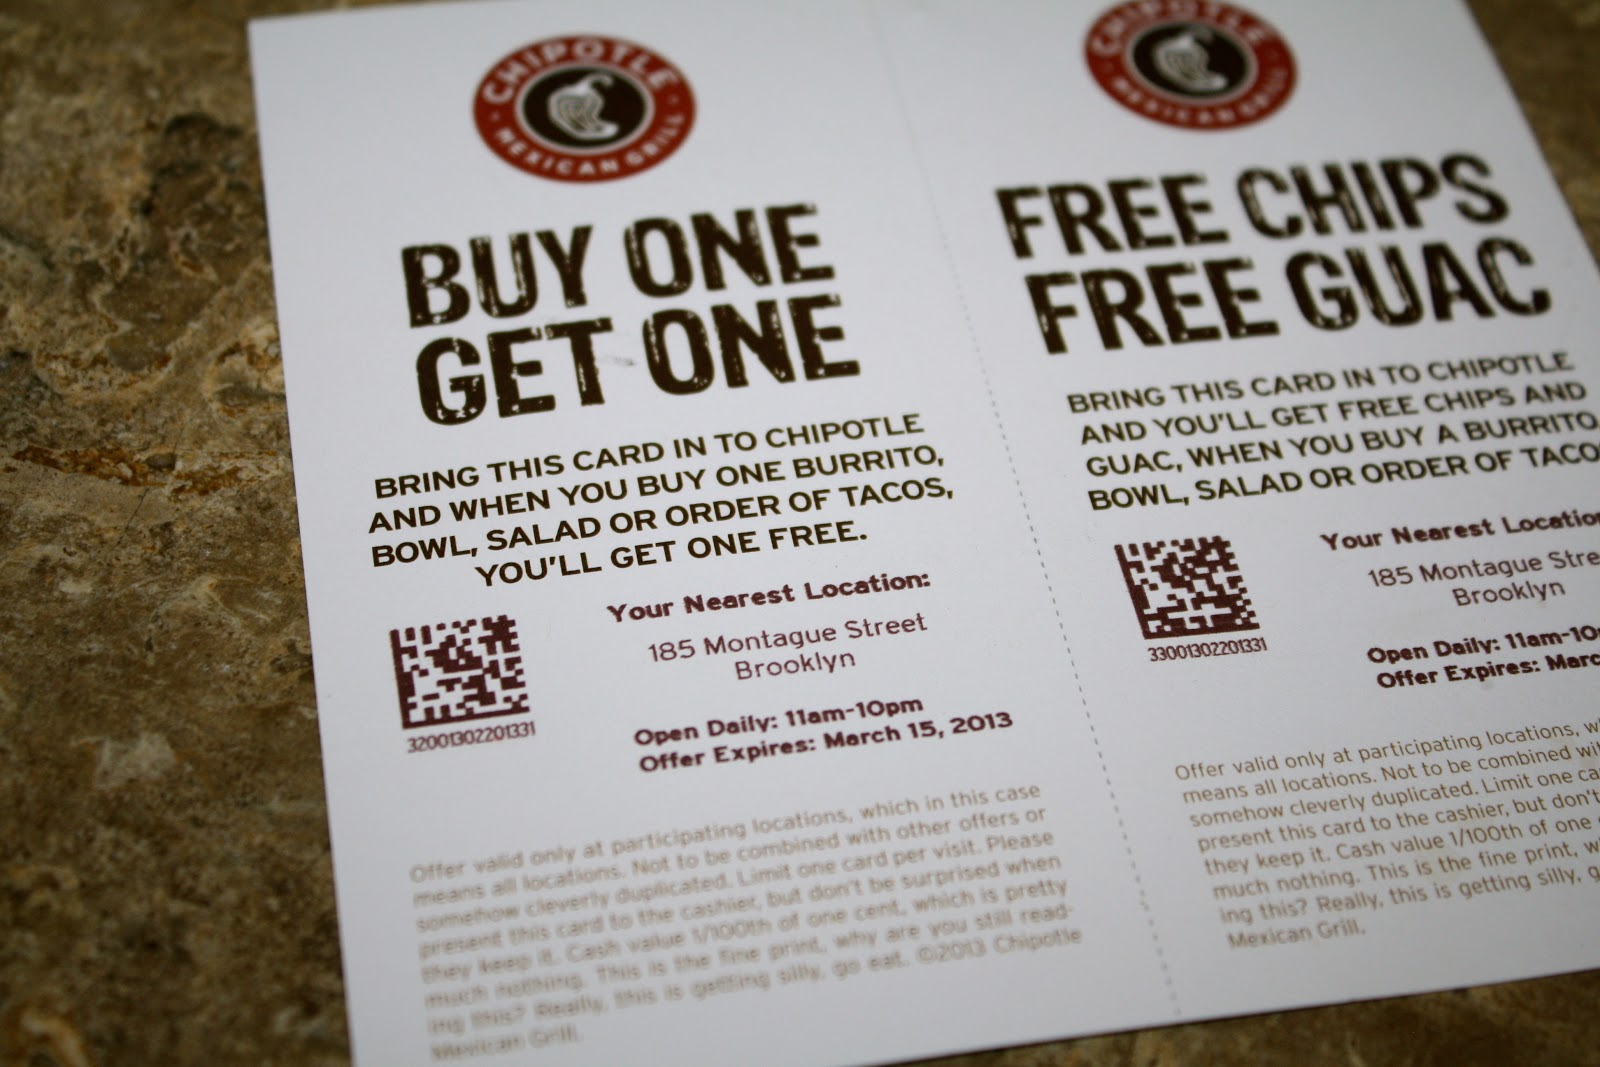 Chipotle discount coupons